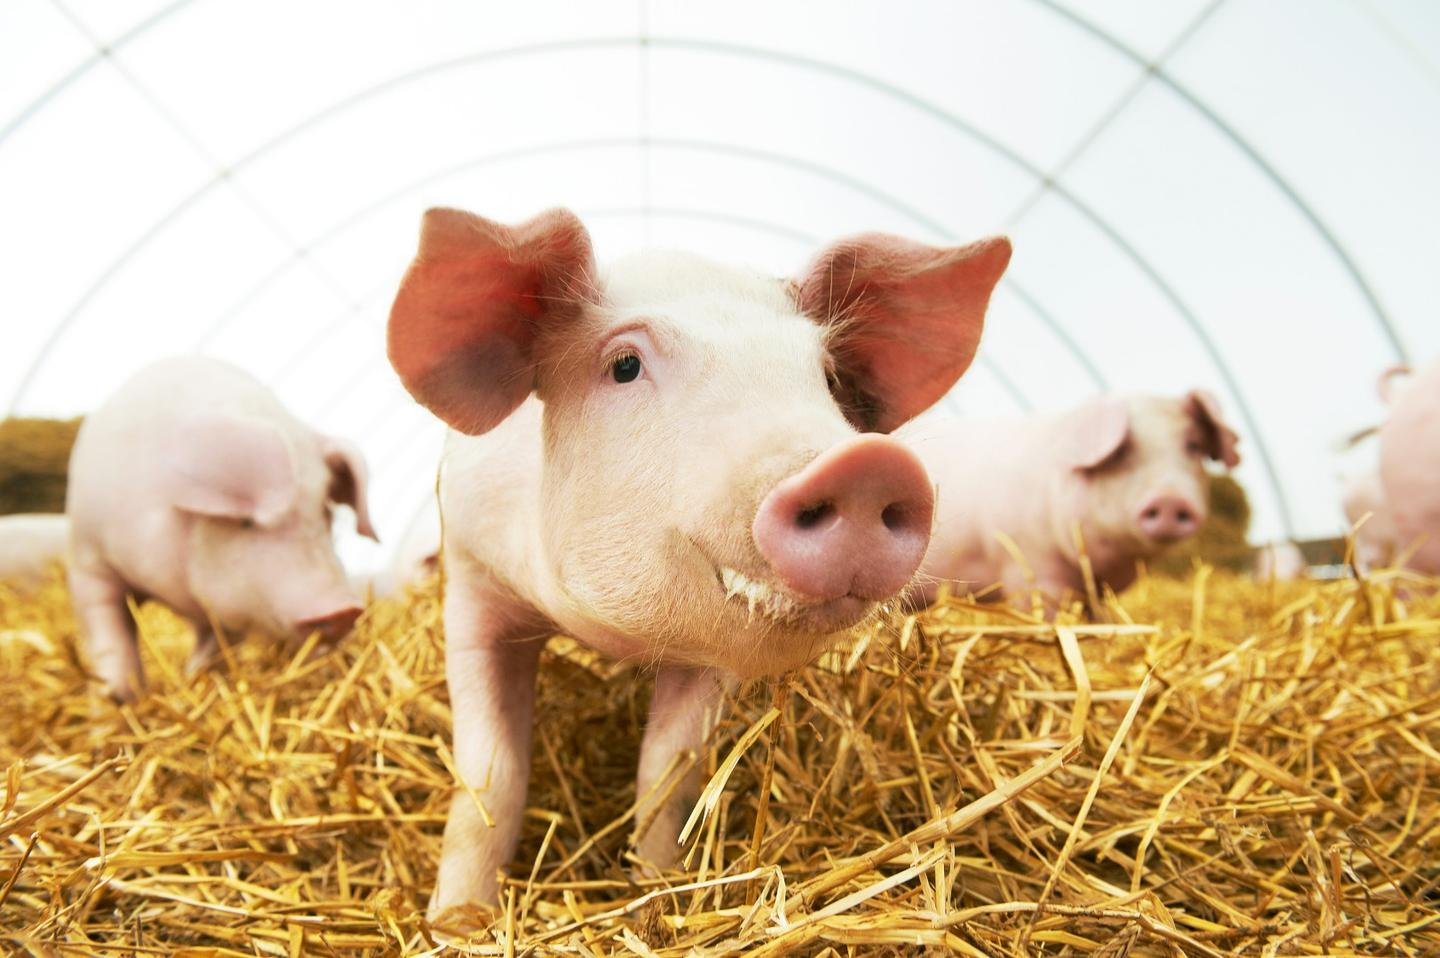 Researchers have implanted bioengineered lungs into pigs, with no medical complications